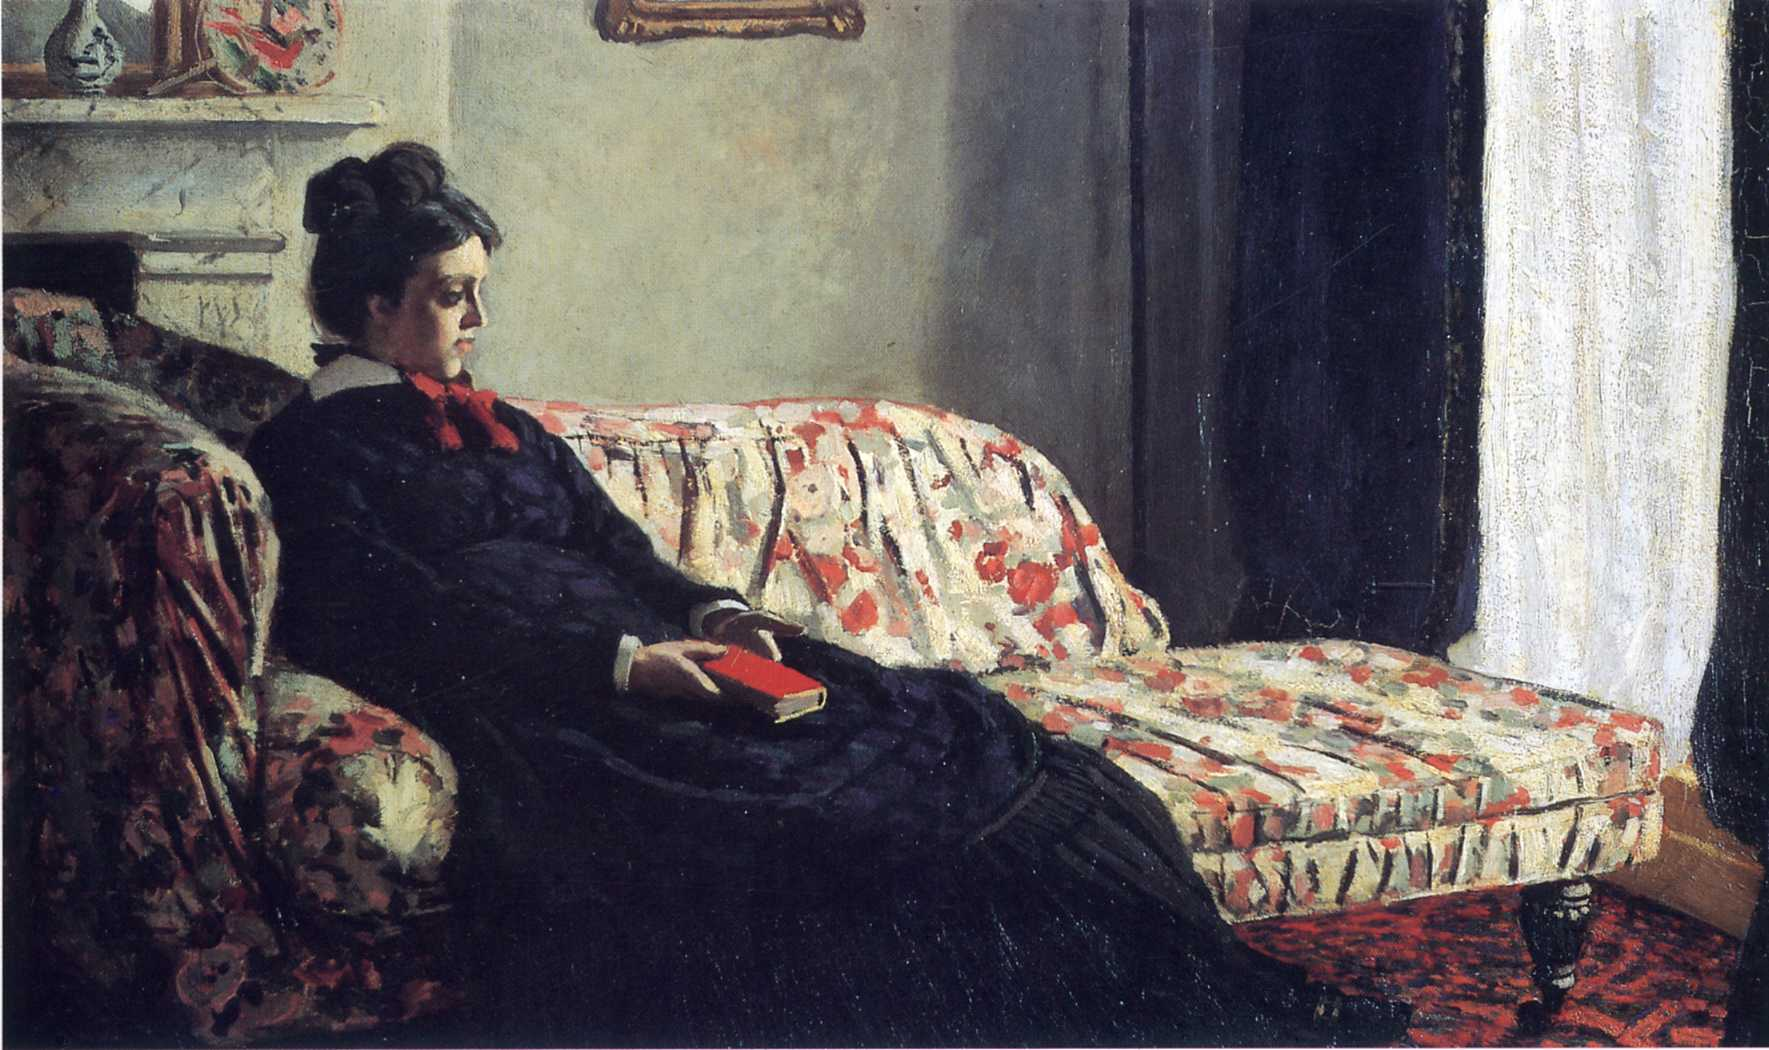 Meditation, Madame Monet on the Sofa, by Claude Monet, 1871